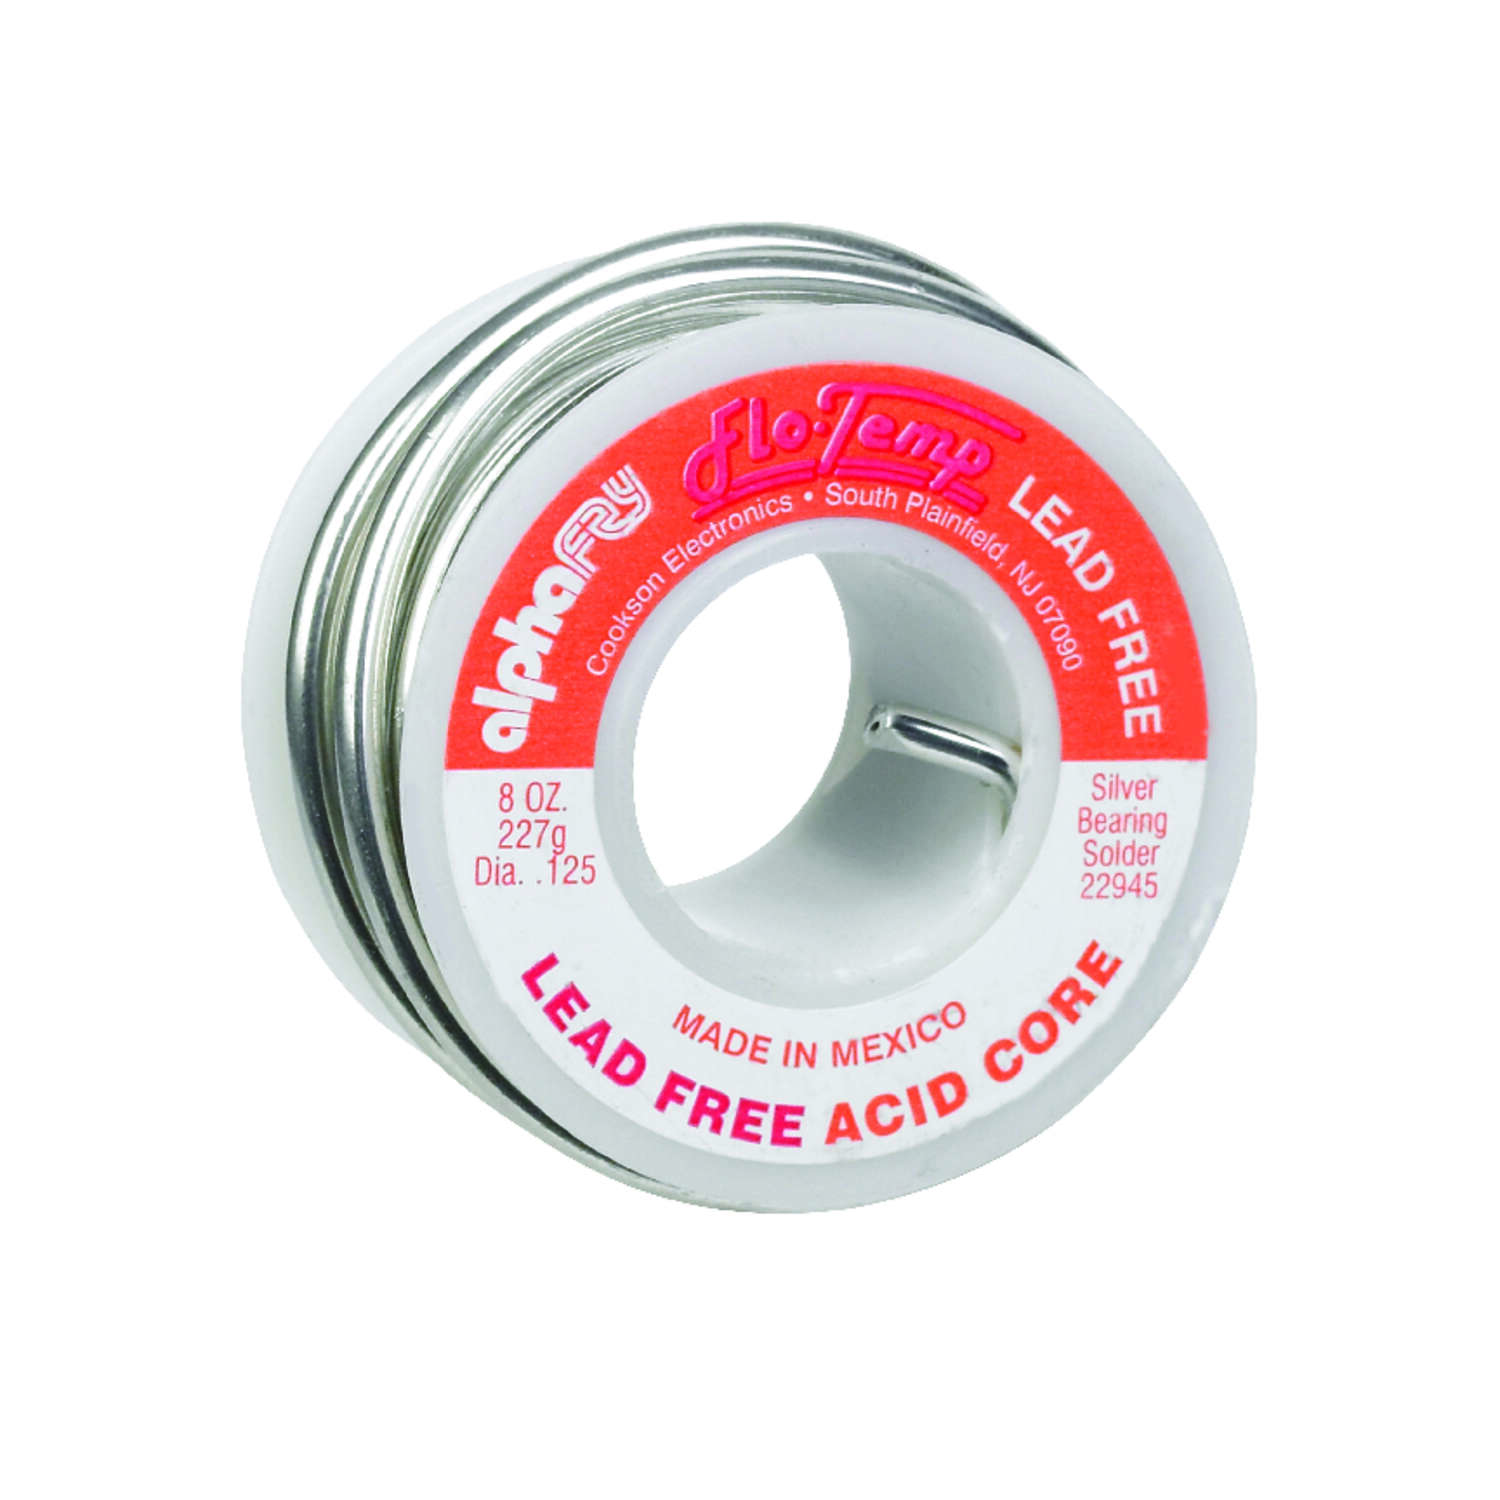 Alpha Fry 8 oz. Lead-Free Acid Core Wire Solder 0.125 in. Dia. Silver Bearing 1 pc.